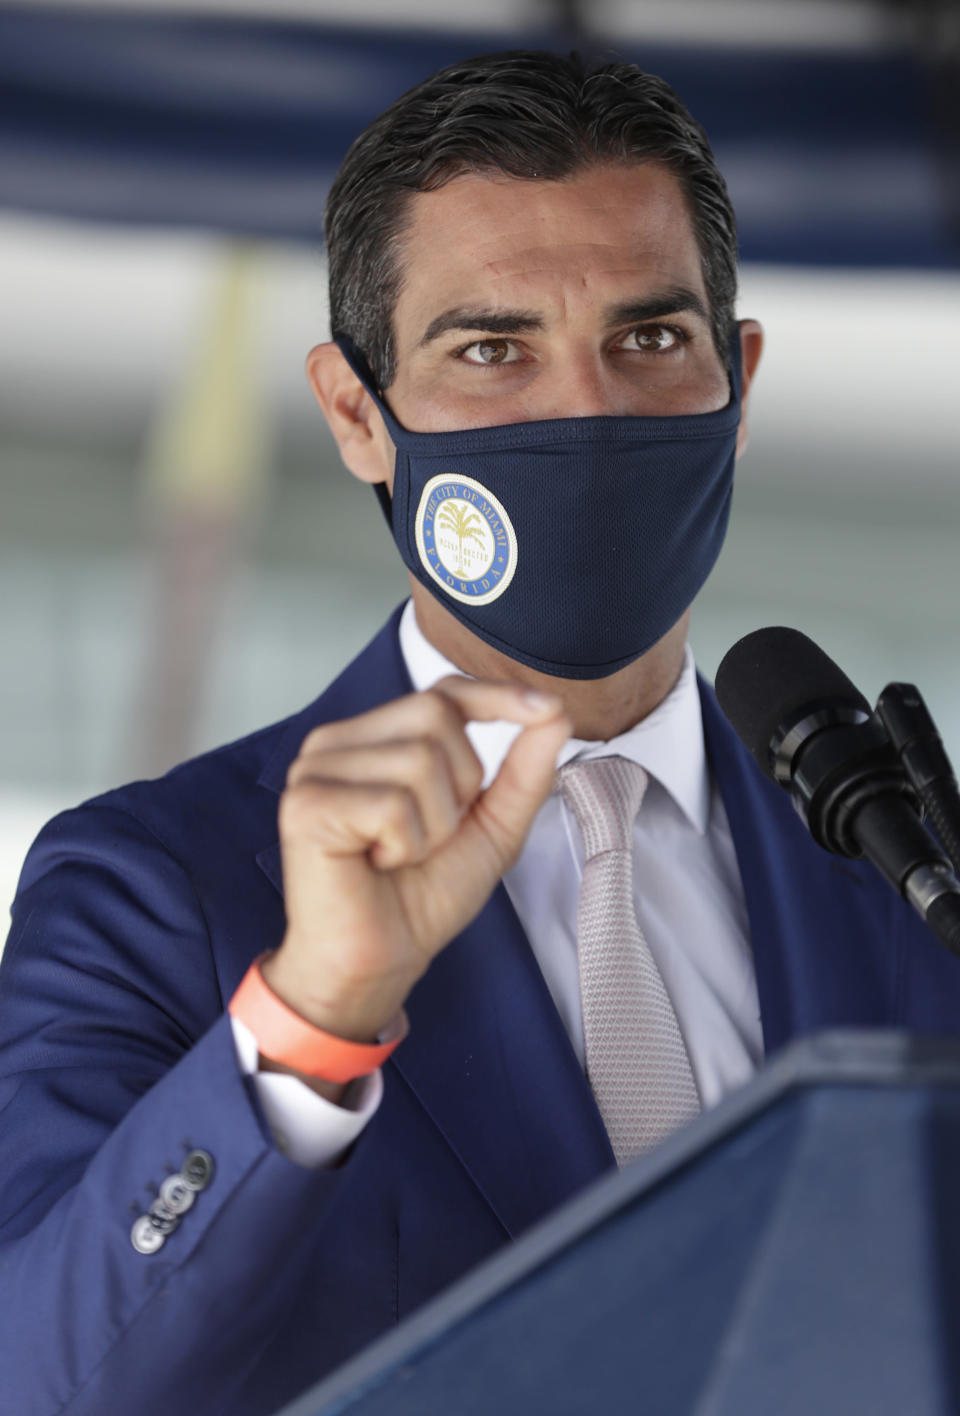 City of Miami Mayor Francis Suarez speaks during a news conference, Tuesday, July 21, 2020, in Miami. Suarez announced that Miami would be closing summer camps and the formation of a team of officers to monitor face mask violations. (AP Photo/Wilfredo Lee)